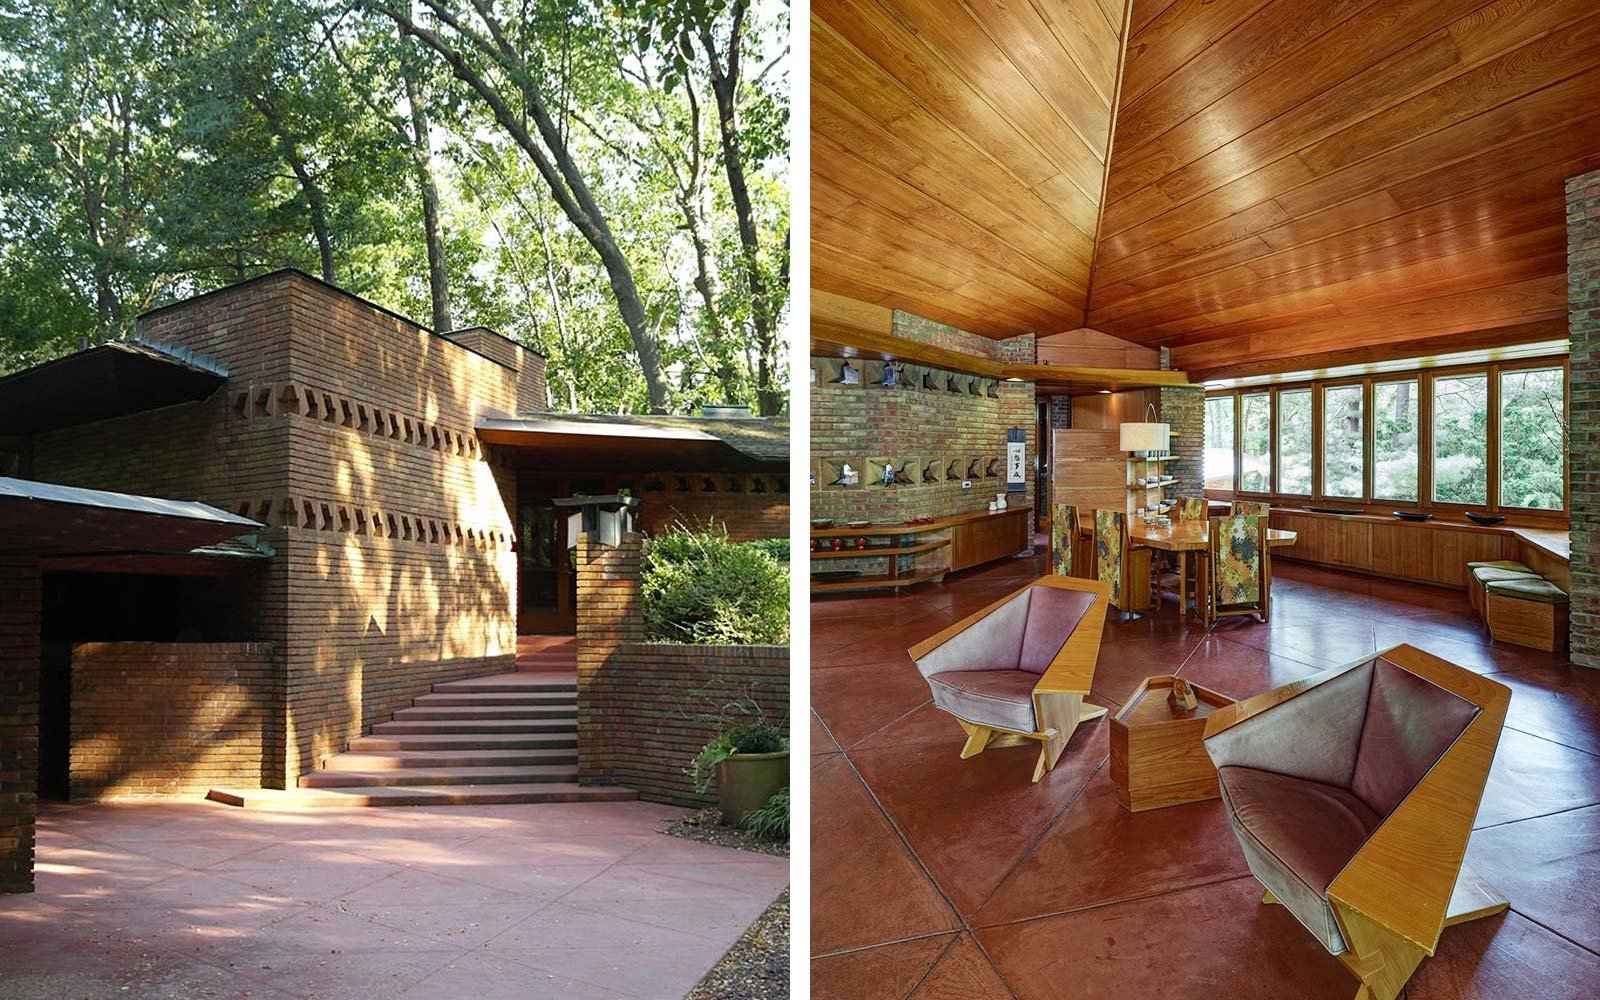 10 must see houses designed by architect frank lloyd wright travel